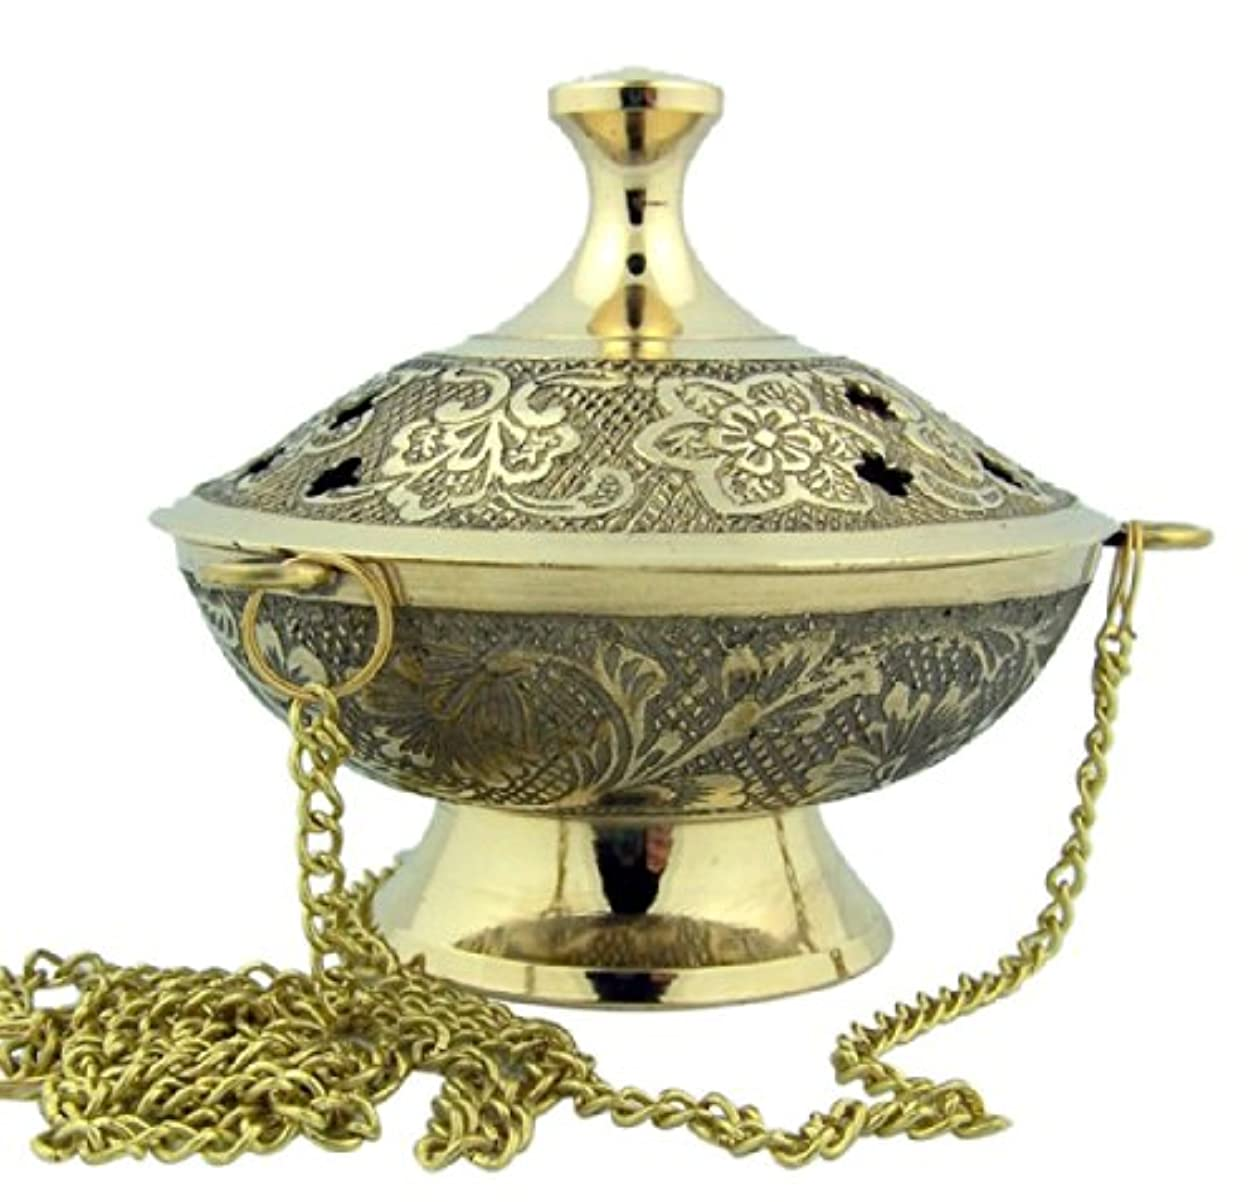 アブセイ殺しますパケットCharcoal Incense Burner Gold Plate over Brass Hanging Censer with Chain